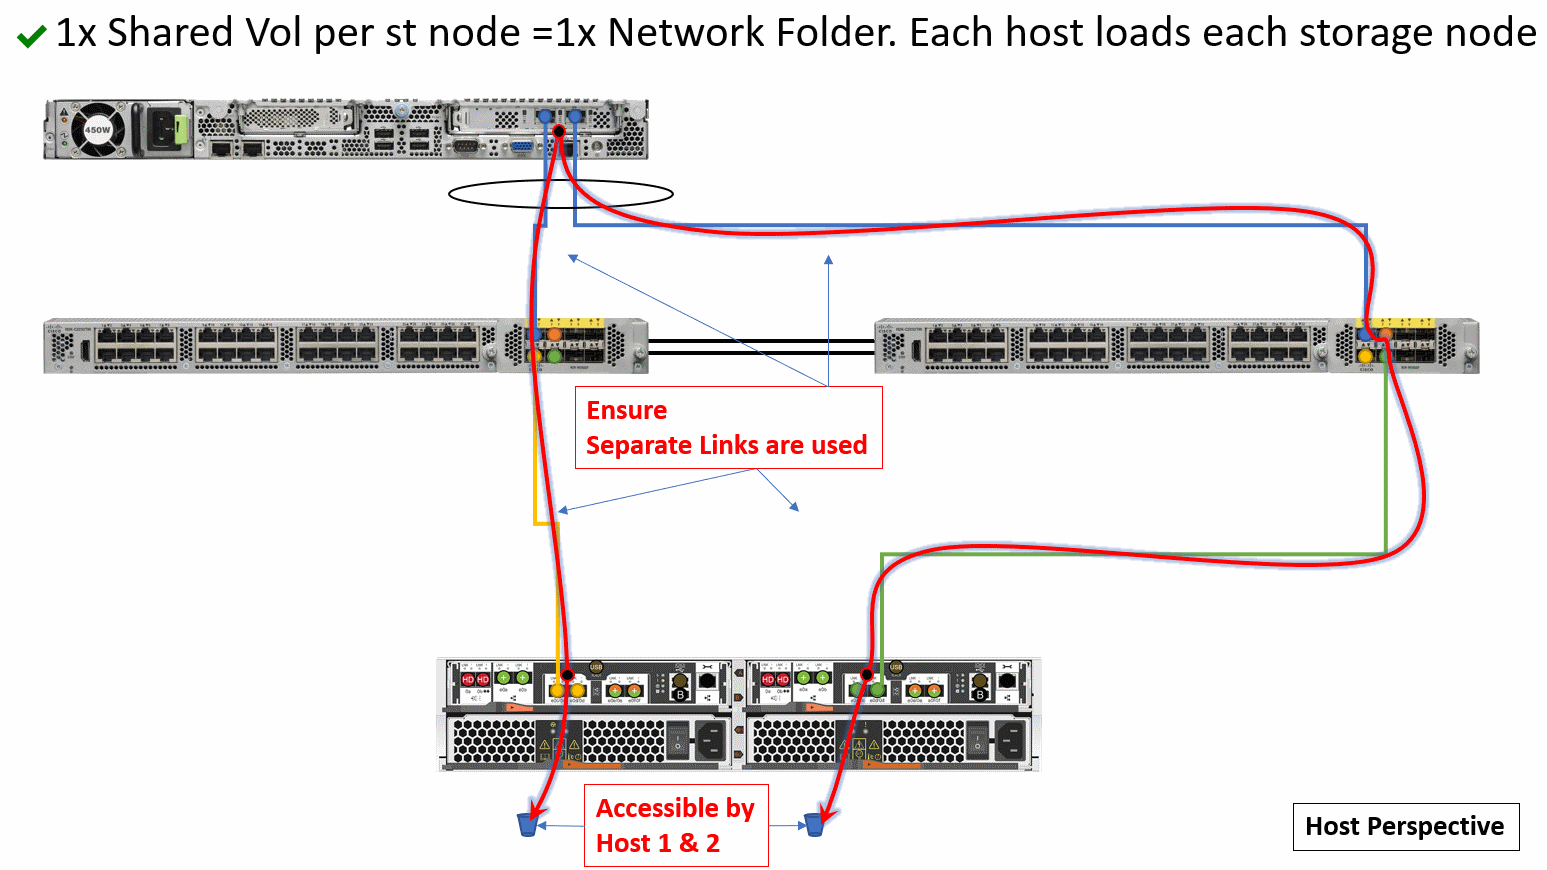 3A) 1x Shared Vol per st node =1x Network Folder. Each host loads each storage node.png